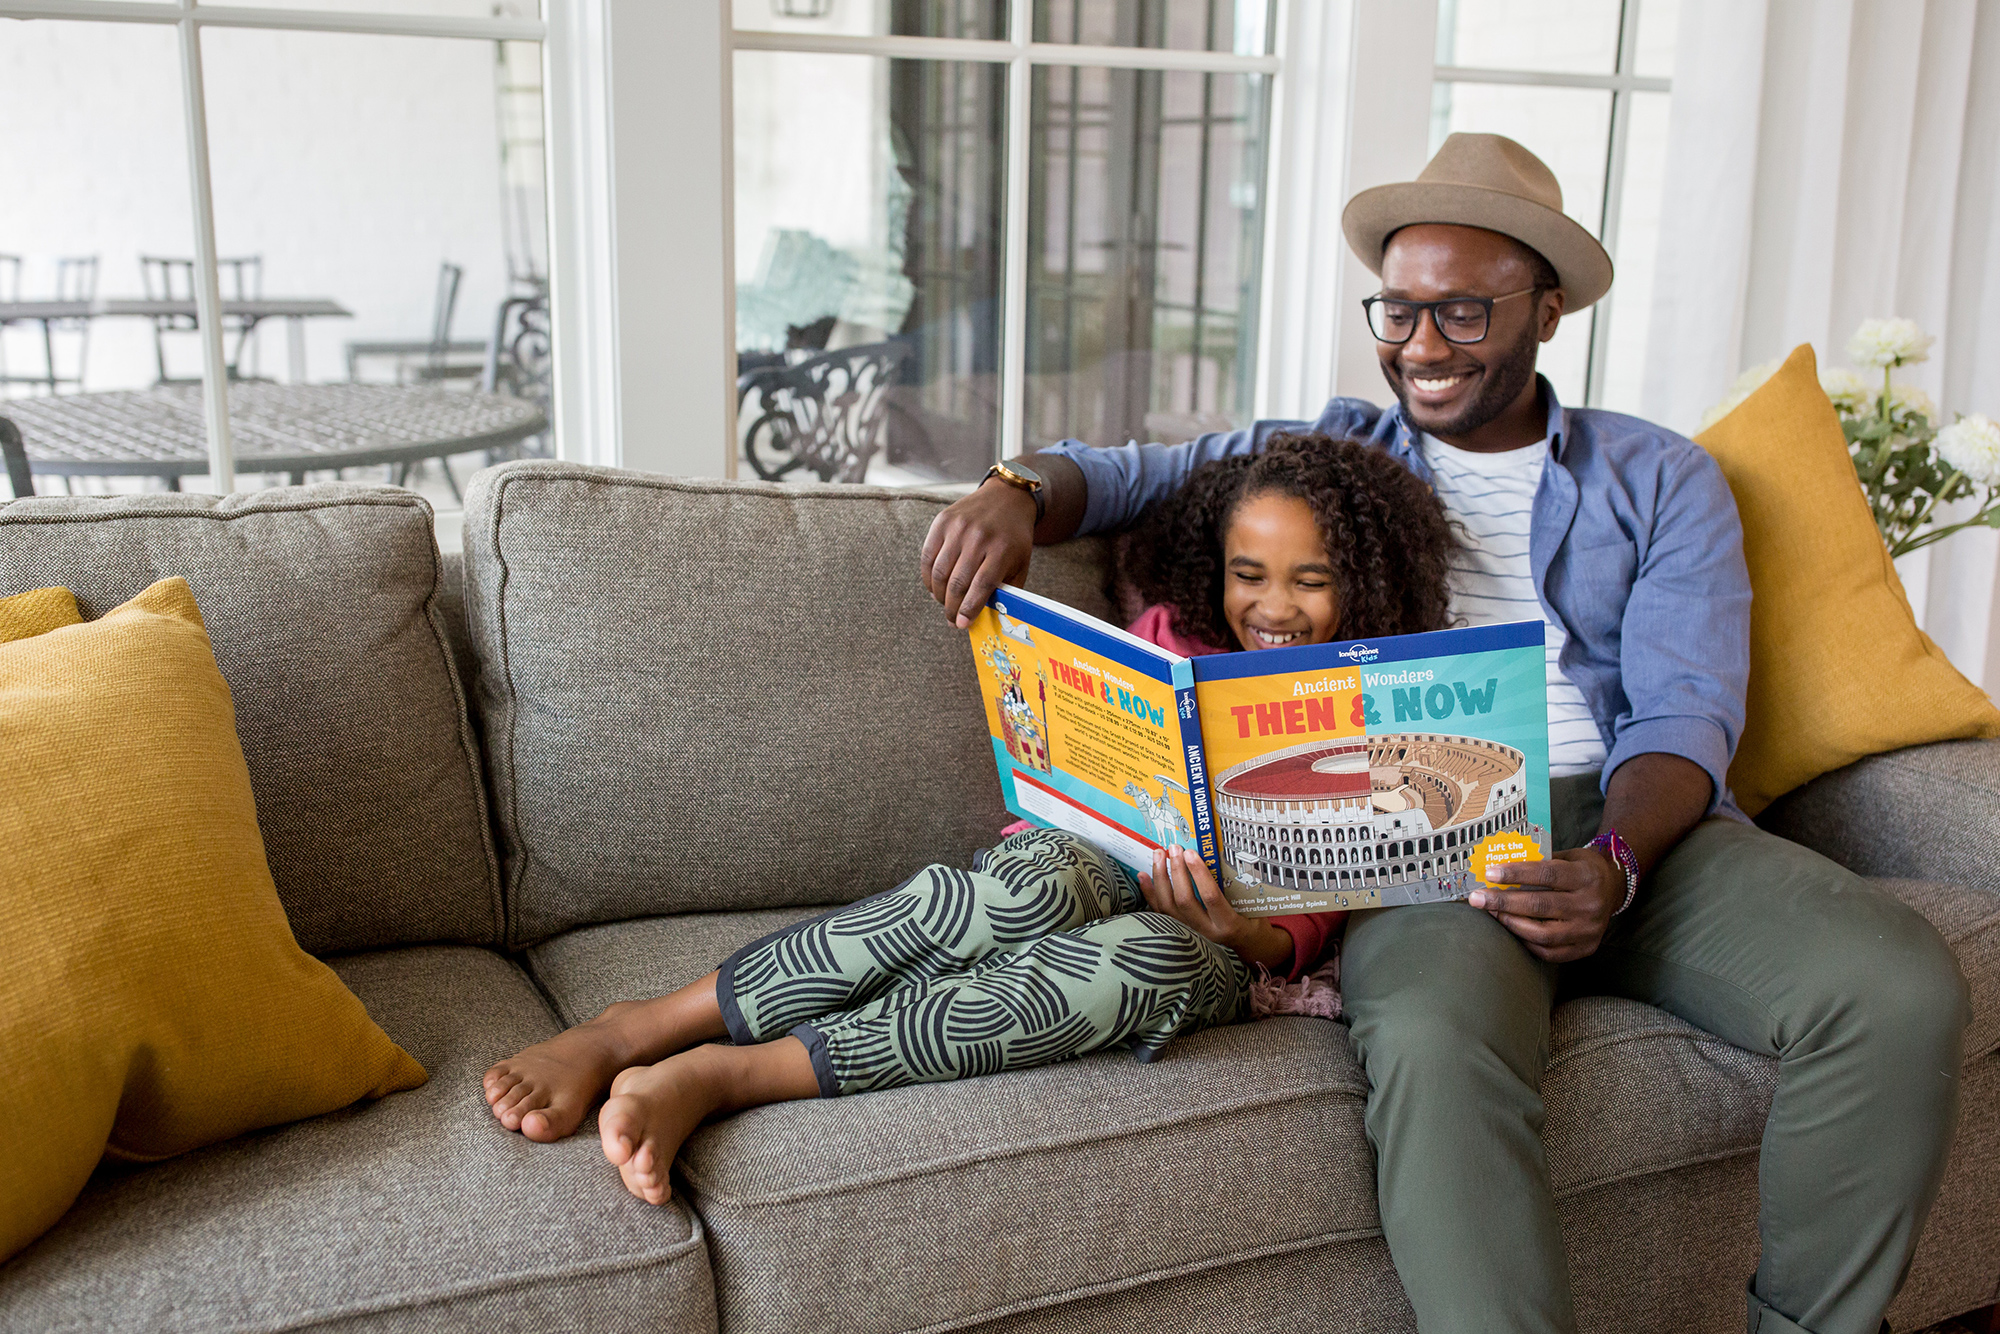 Father and daughter reading book together